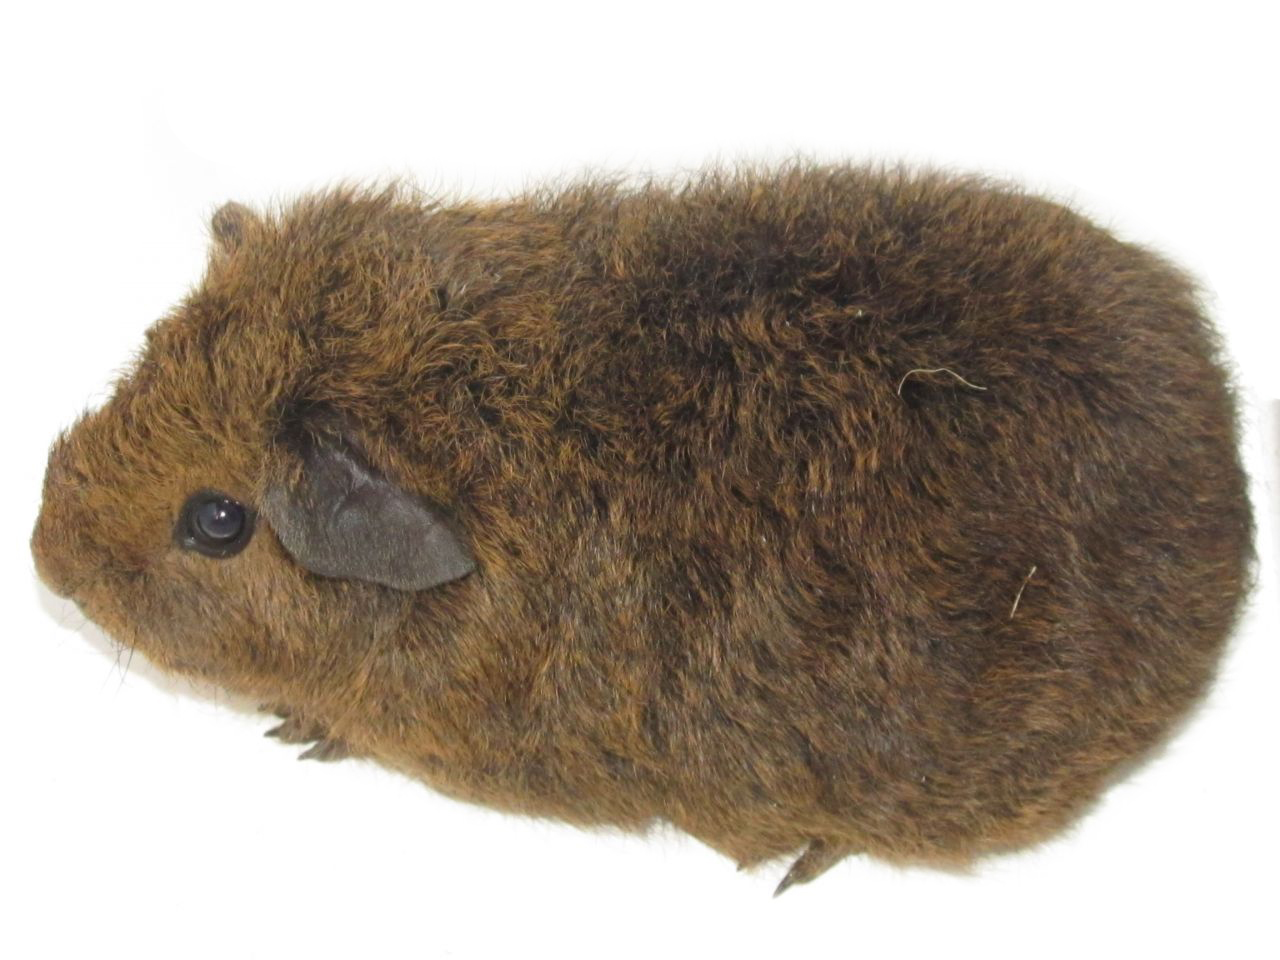 The Rex guinea pig has a rough coat.